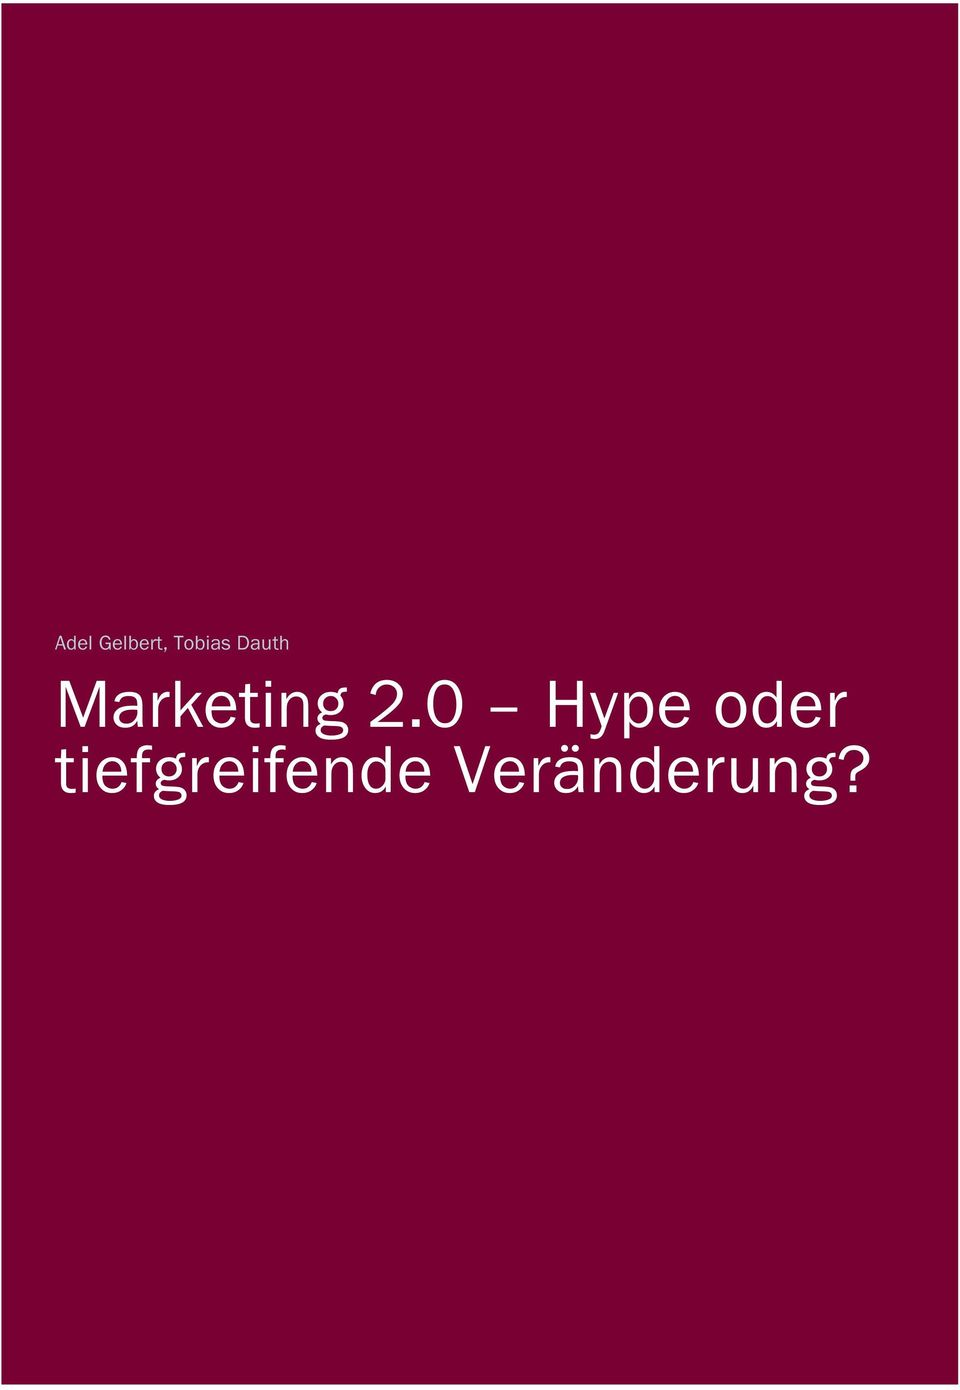 Marketing 2.